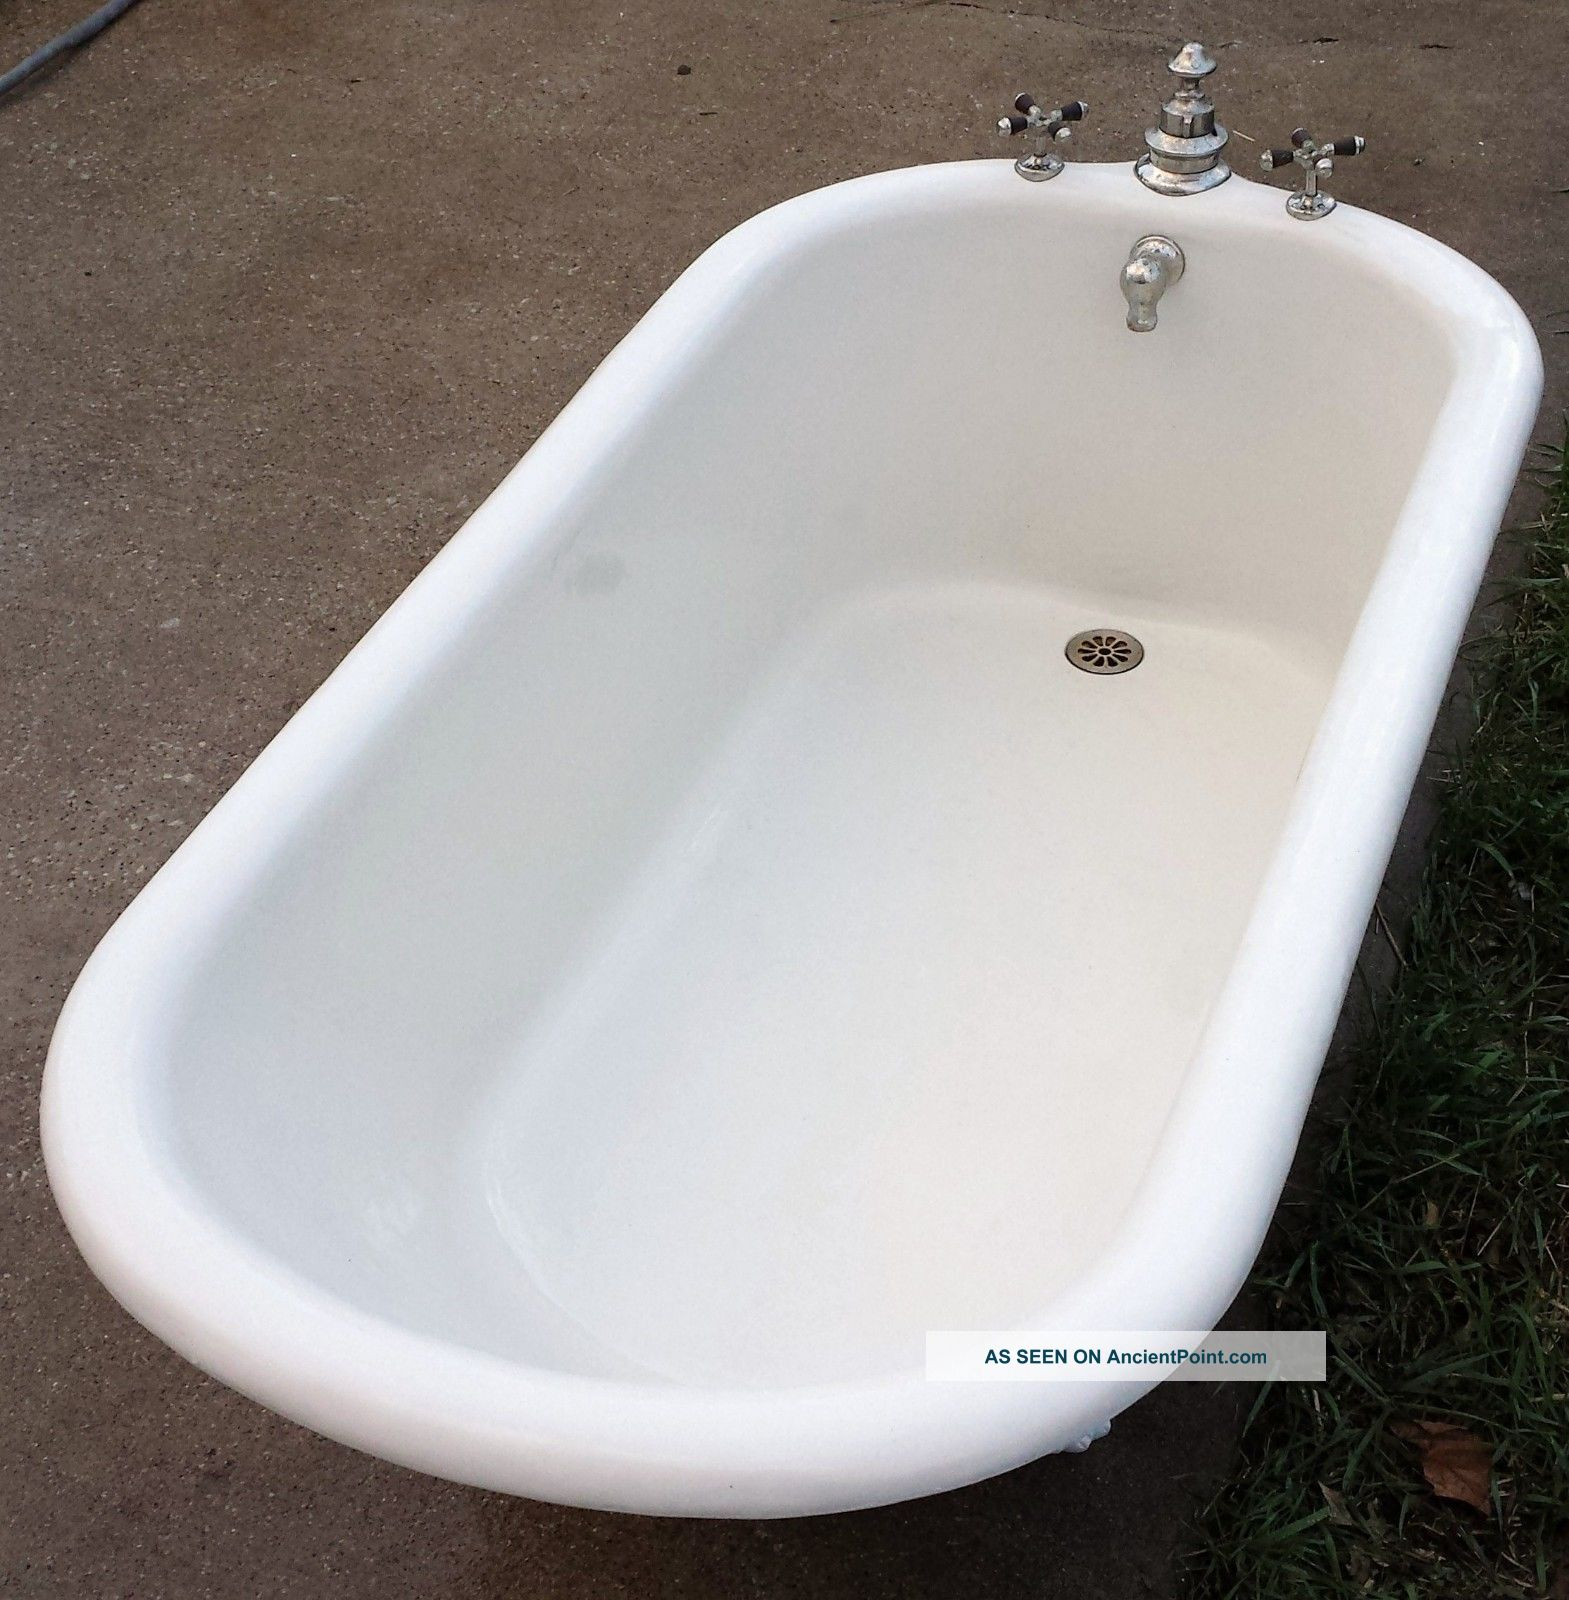 Antique Vintage Cast Iron Wolff Porcelain Tub Made In Usa On 7 1899